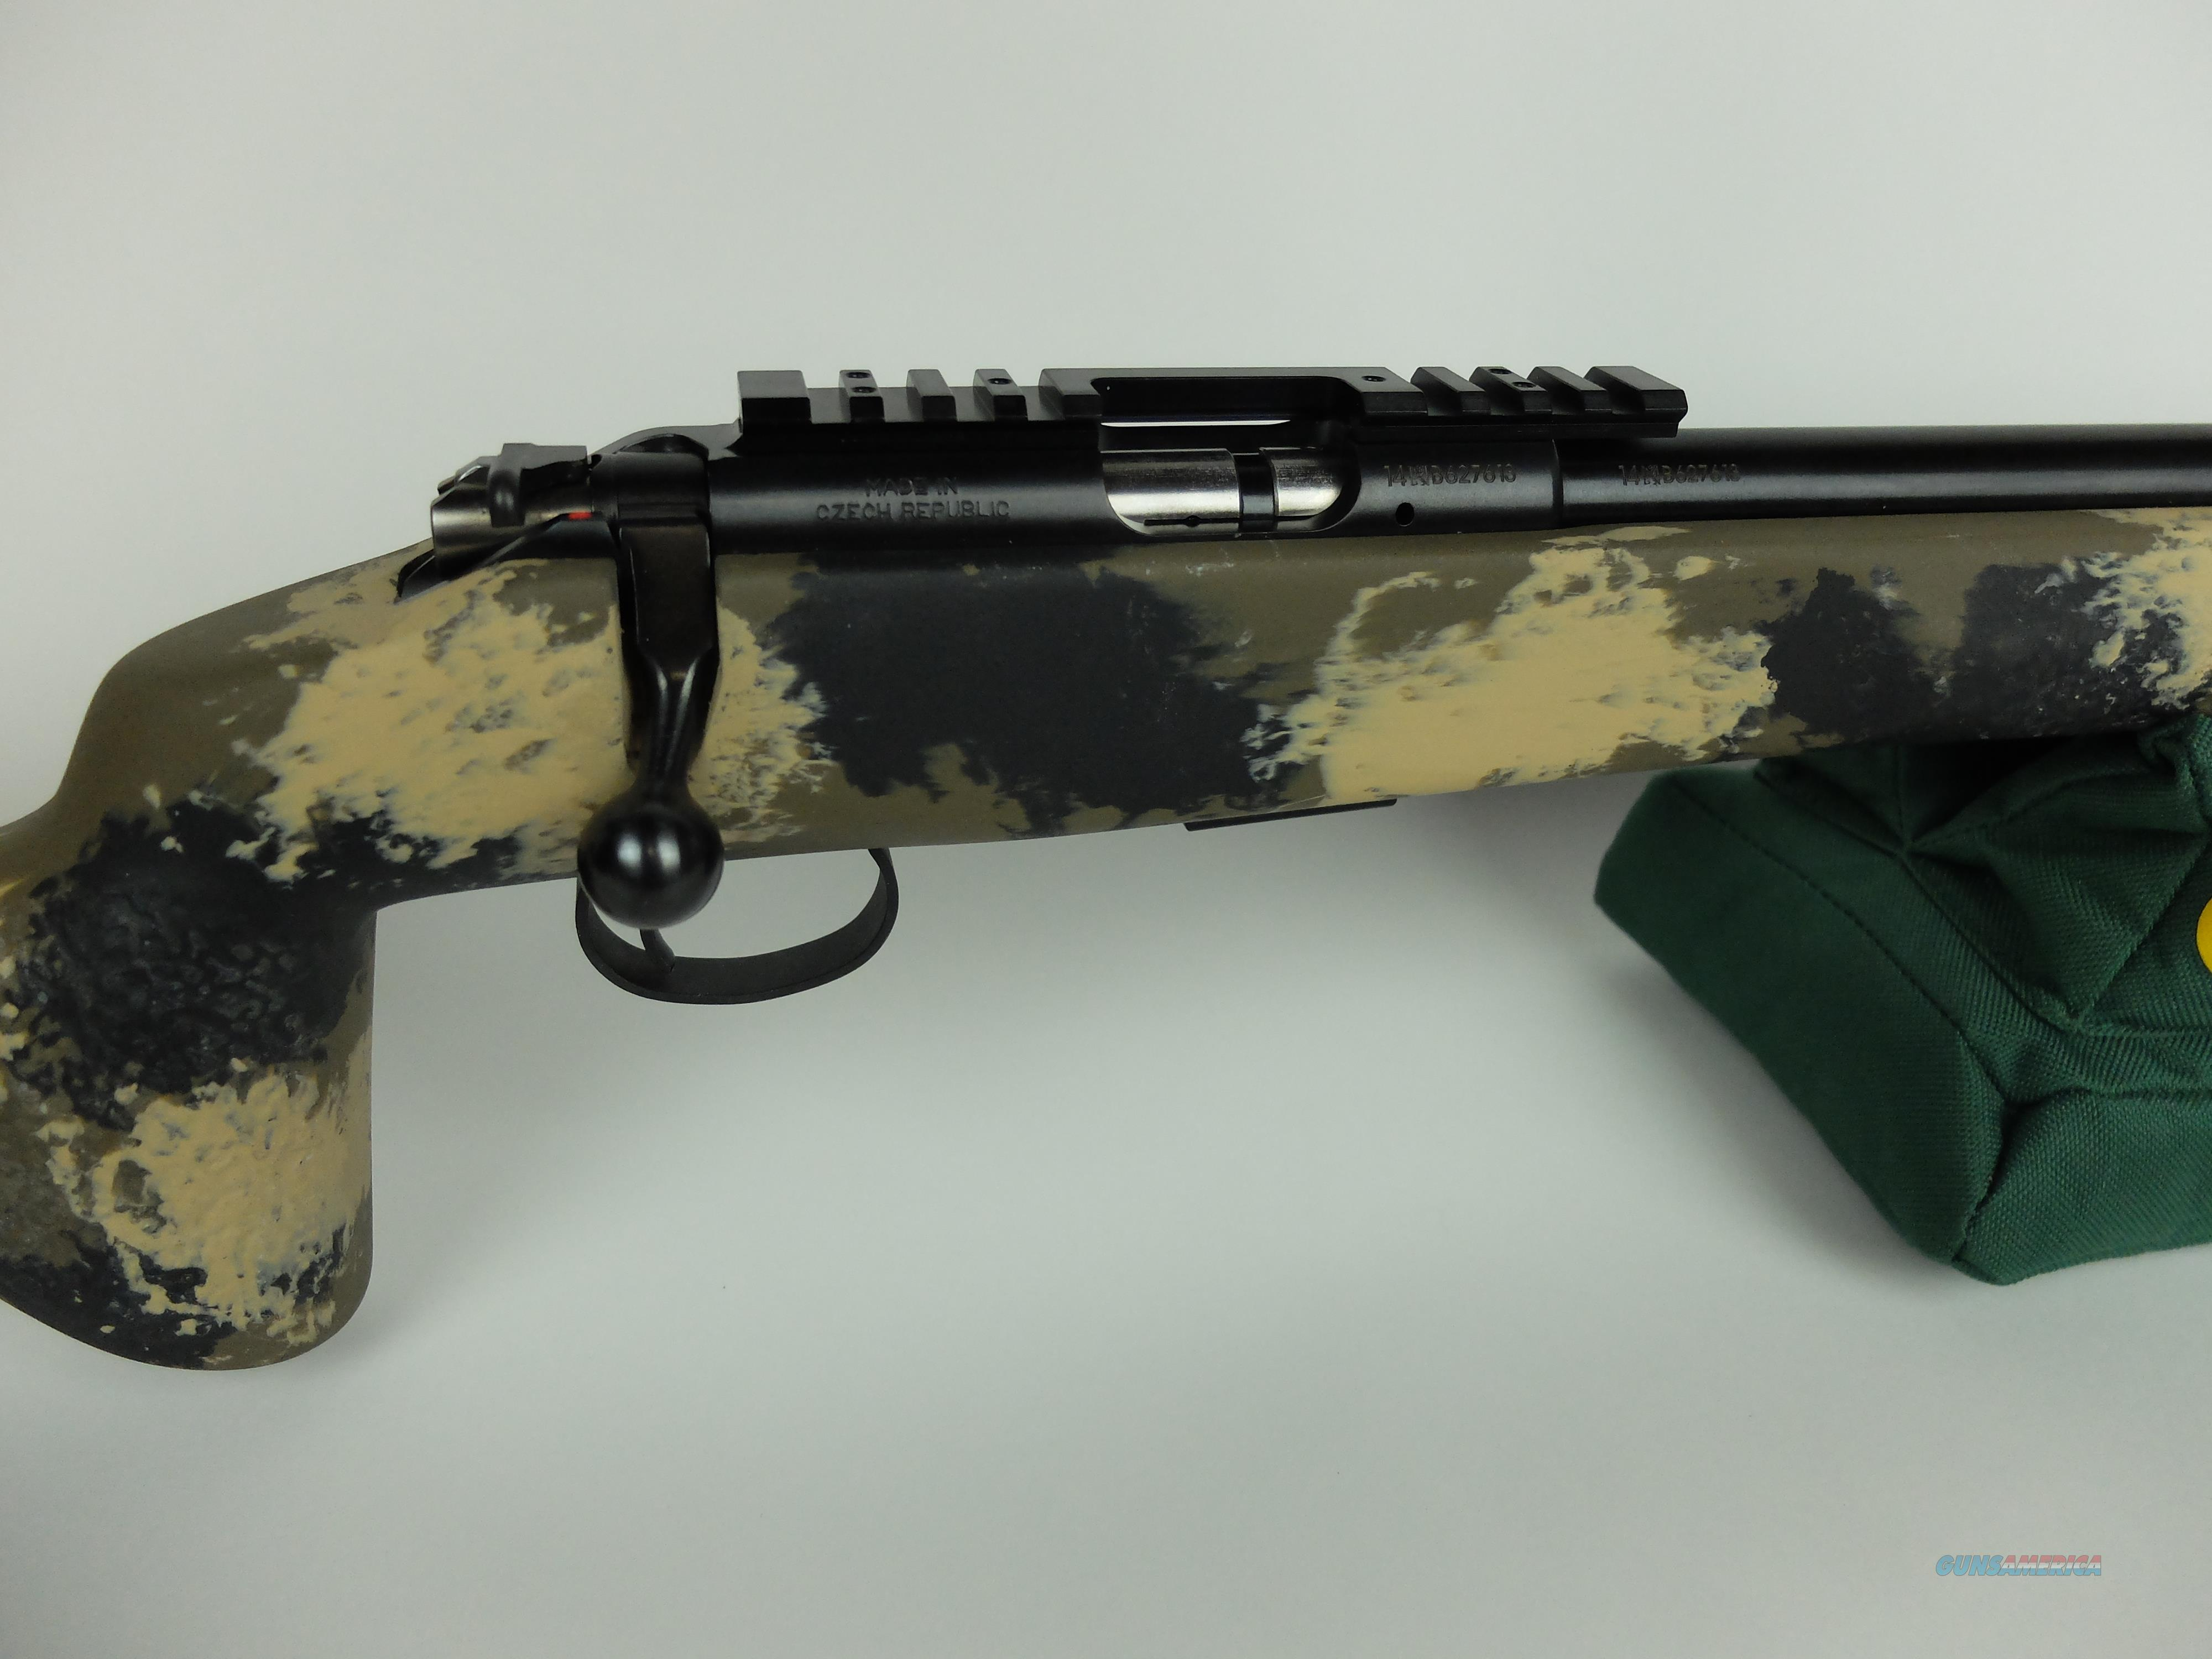 CZ 455 Trainer  22LR bolt action in Manners stock with threaded barrel